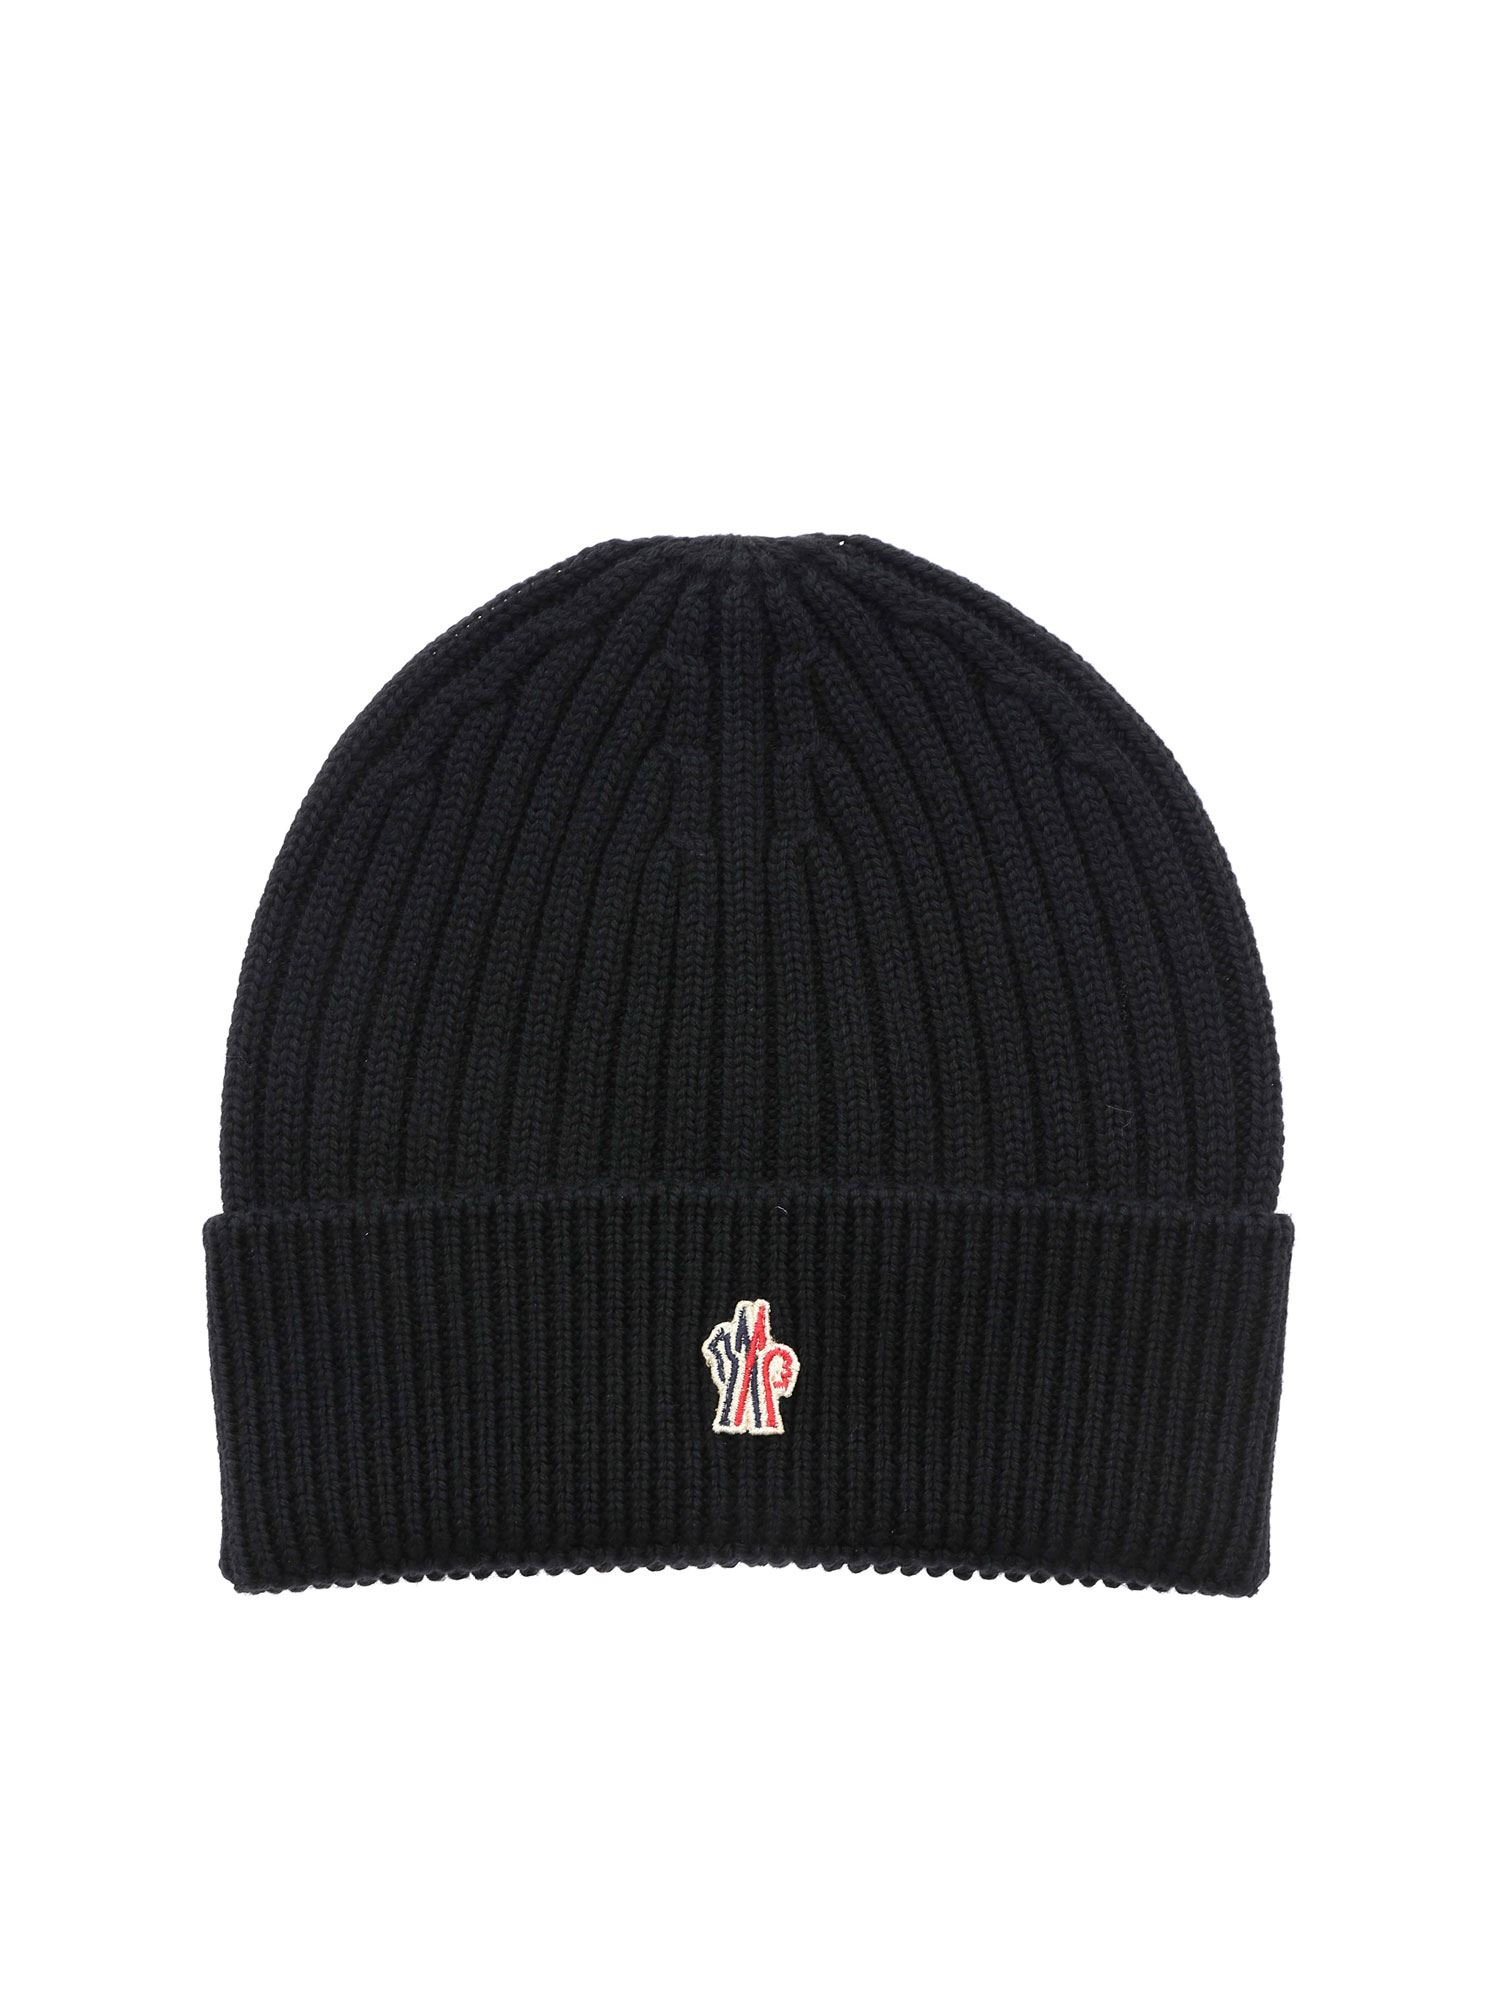 Moncler Grenoble RIBBED BEANIE IN BLACK